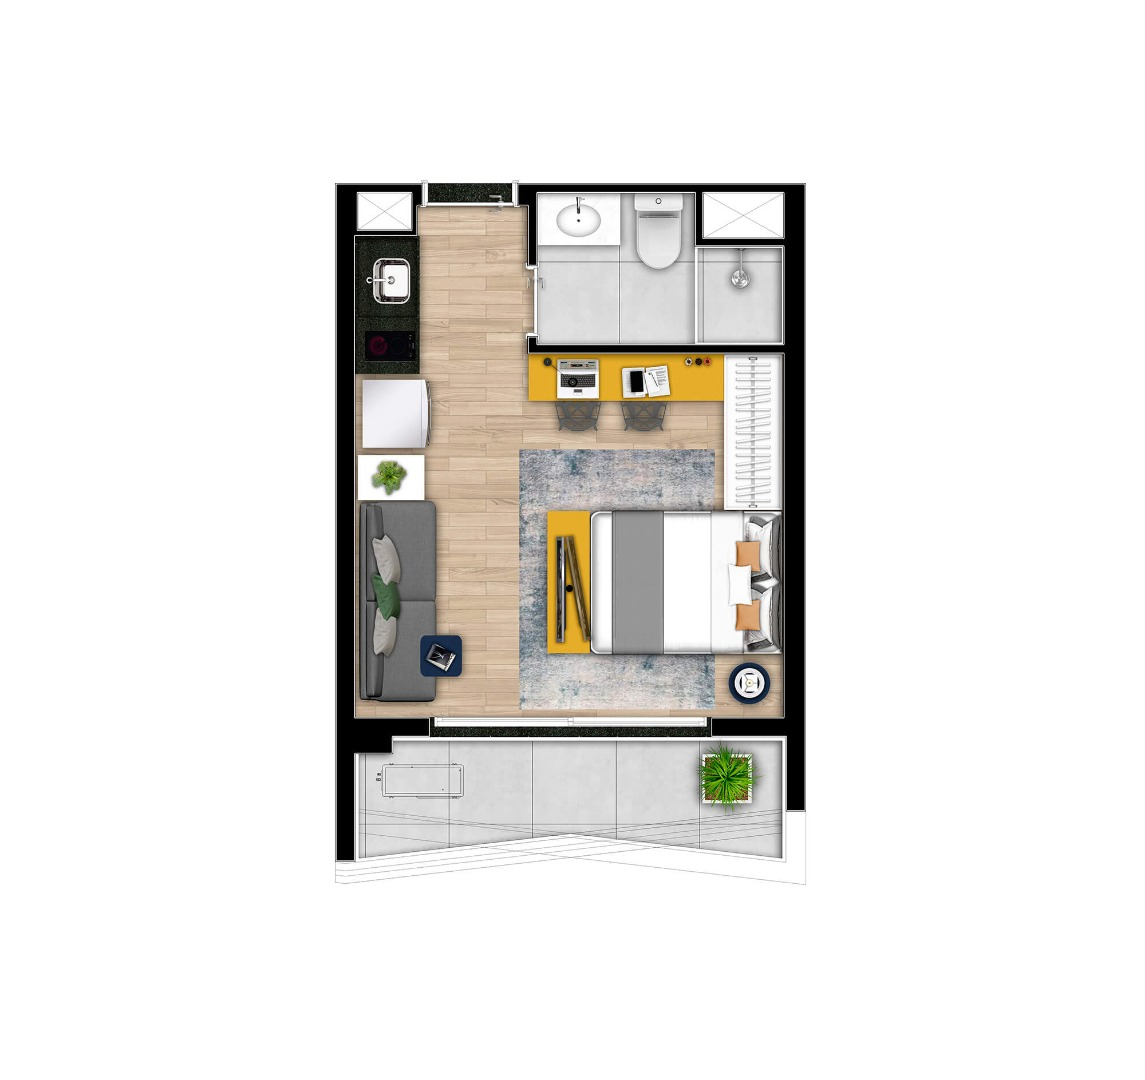 Planta do Nex One Alto da Boa Vista. floorplan